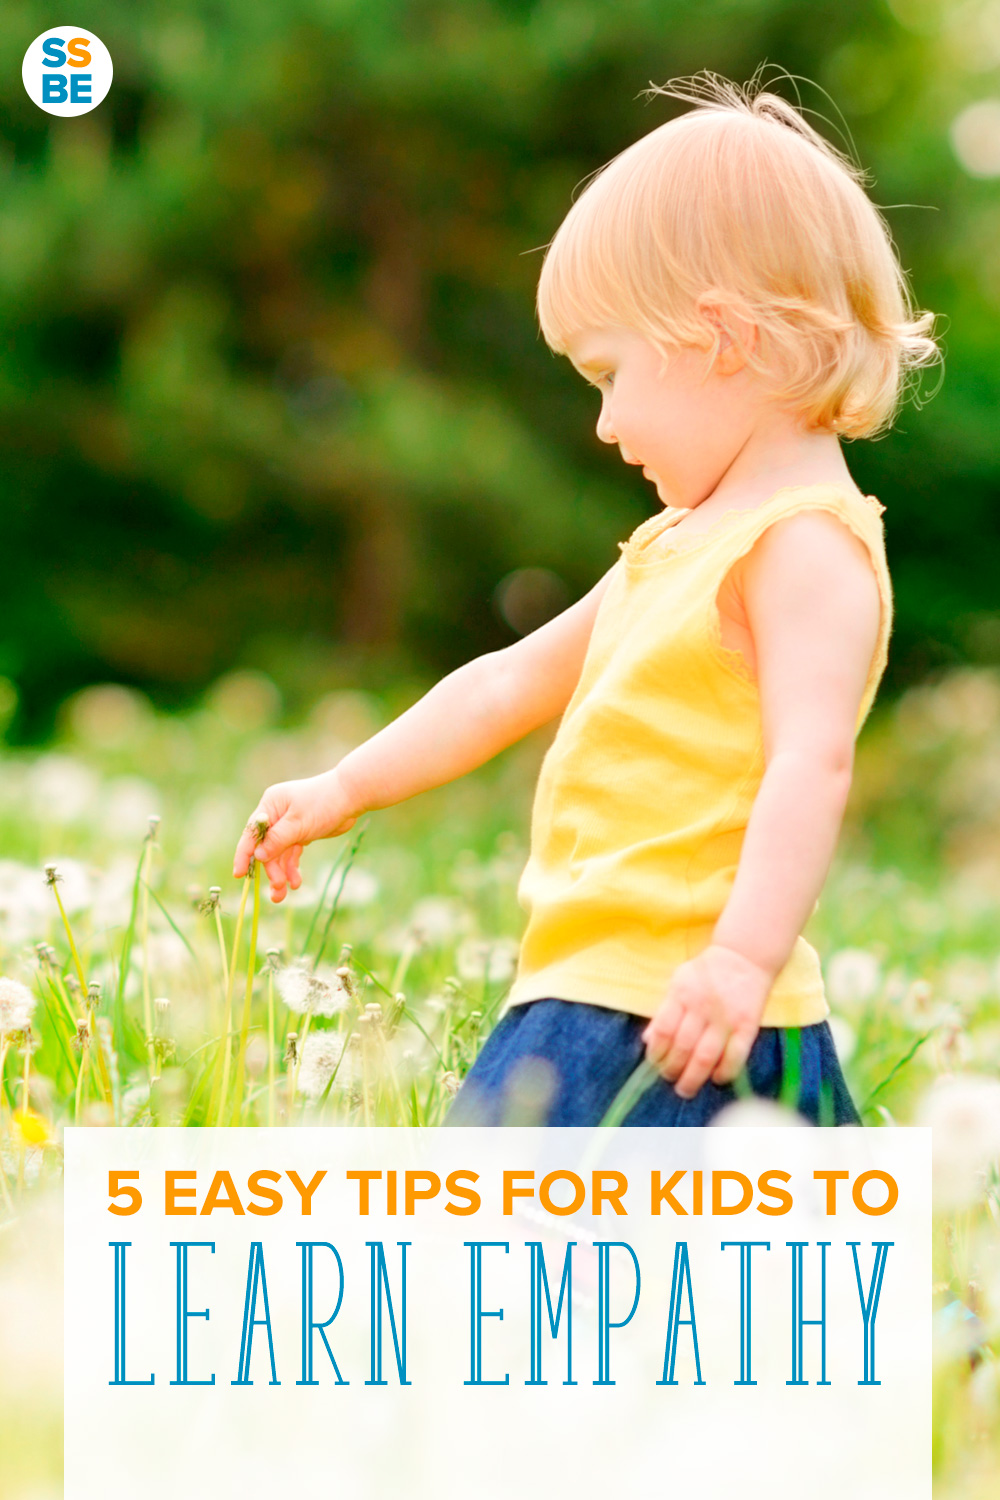 Empathy has long been touted as one of the most critical skills for children to have. Teach this crucial skill with these 5 tips for kids to learn empathy.